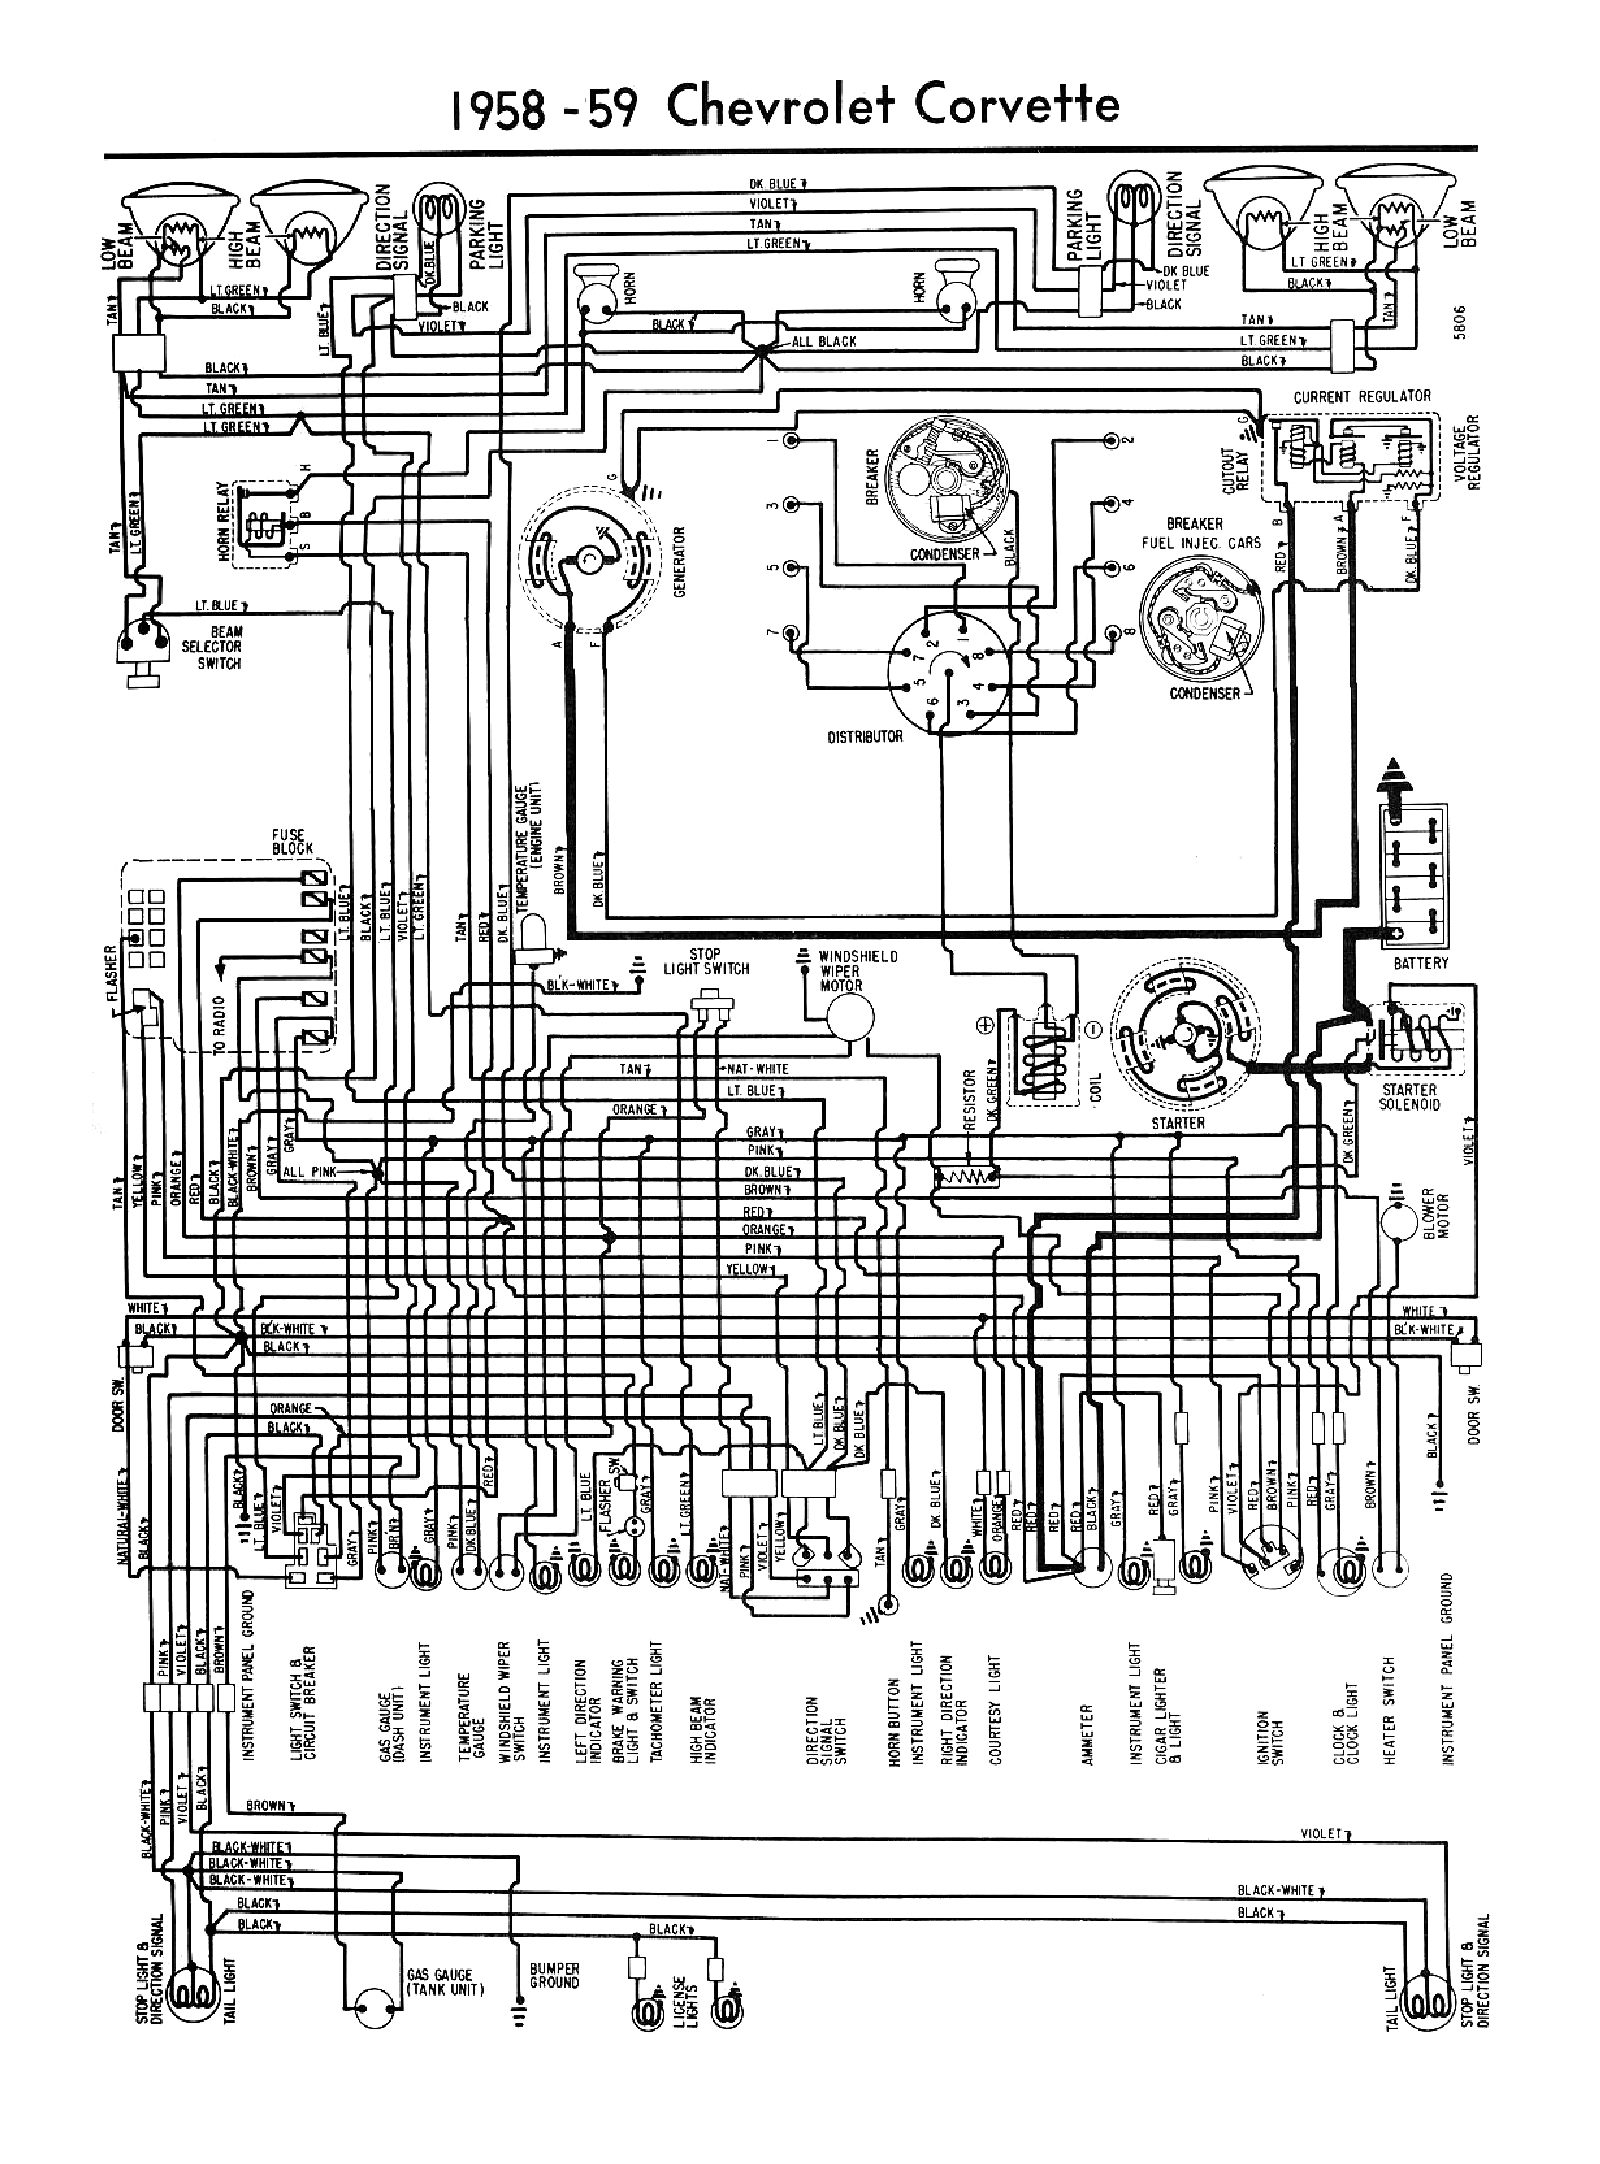 wiring diagram of 1968 chevrolet corvette wire data schema u2022 rh  cccgroup co 1966 Chevy C10 Wiring Diagram for Dash 1968 Chevy C10 Wiring- Diagram